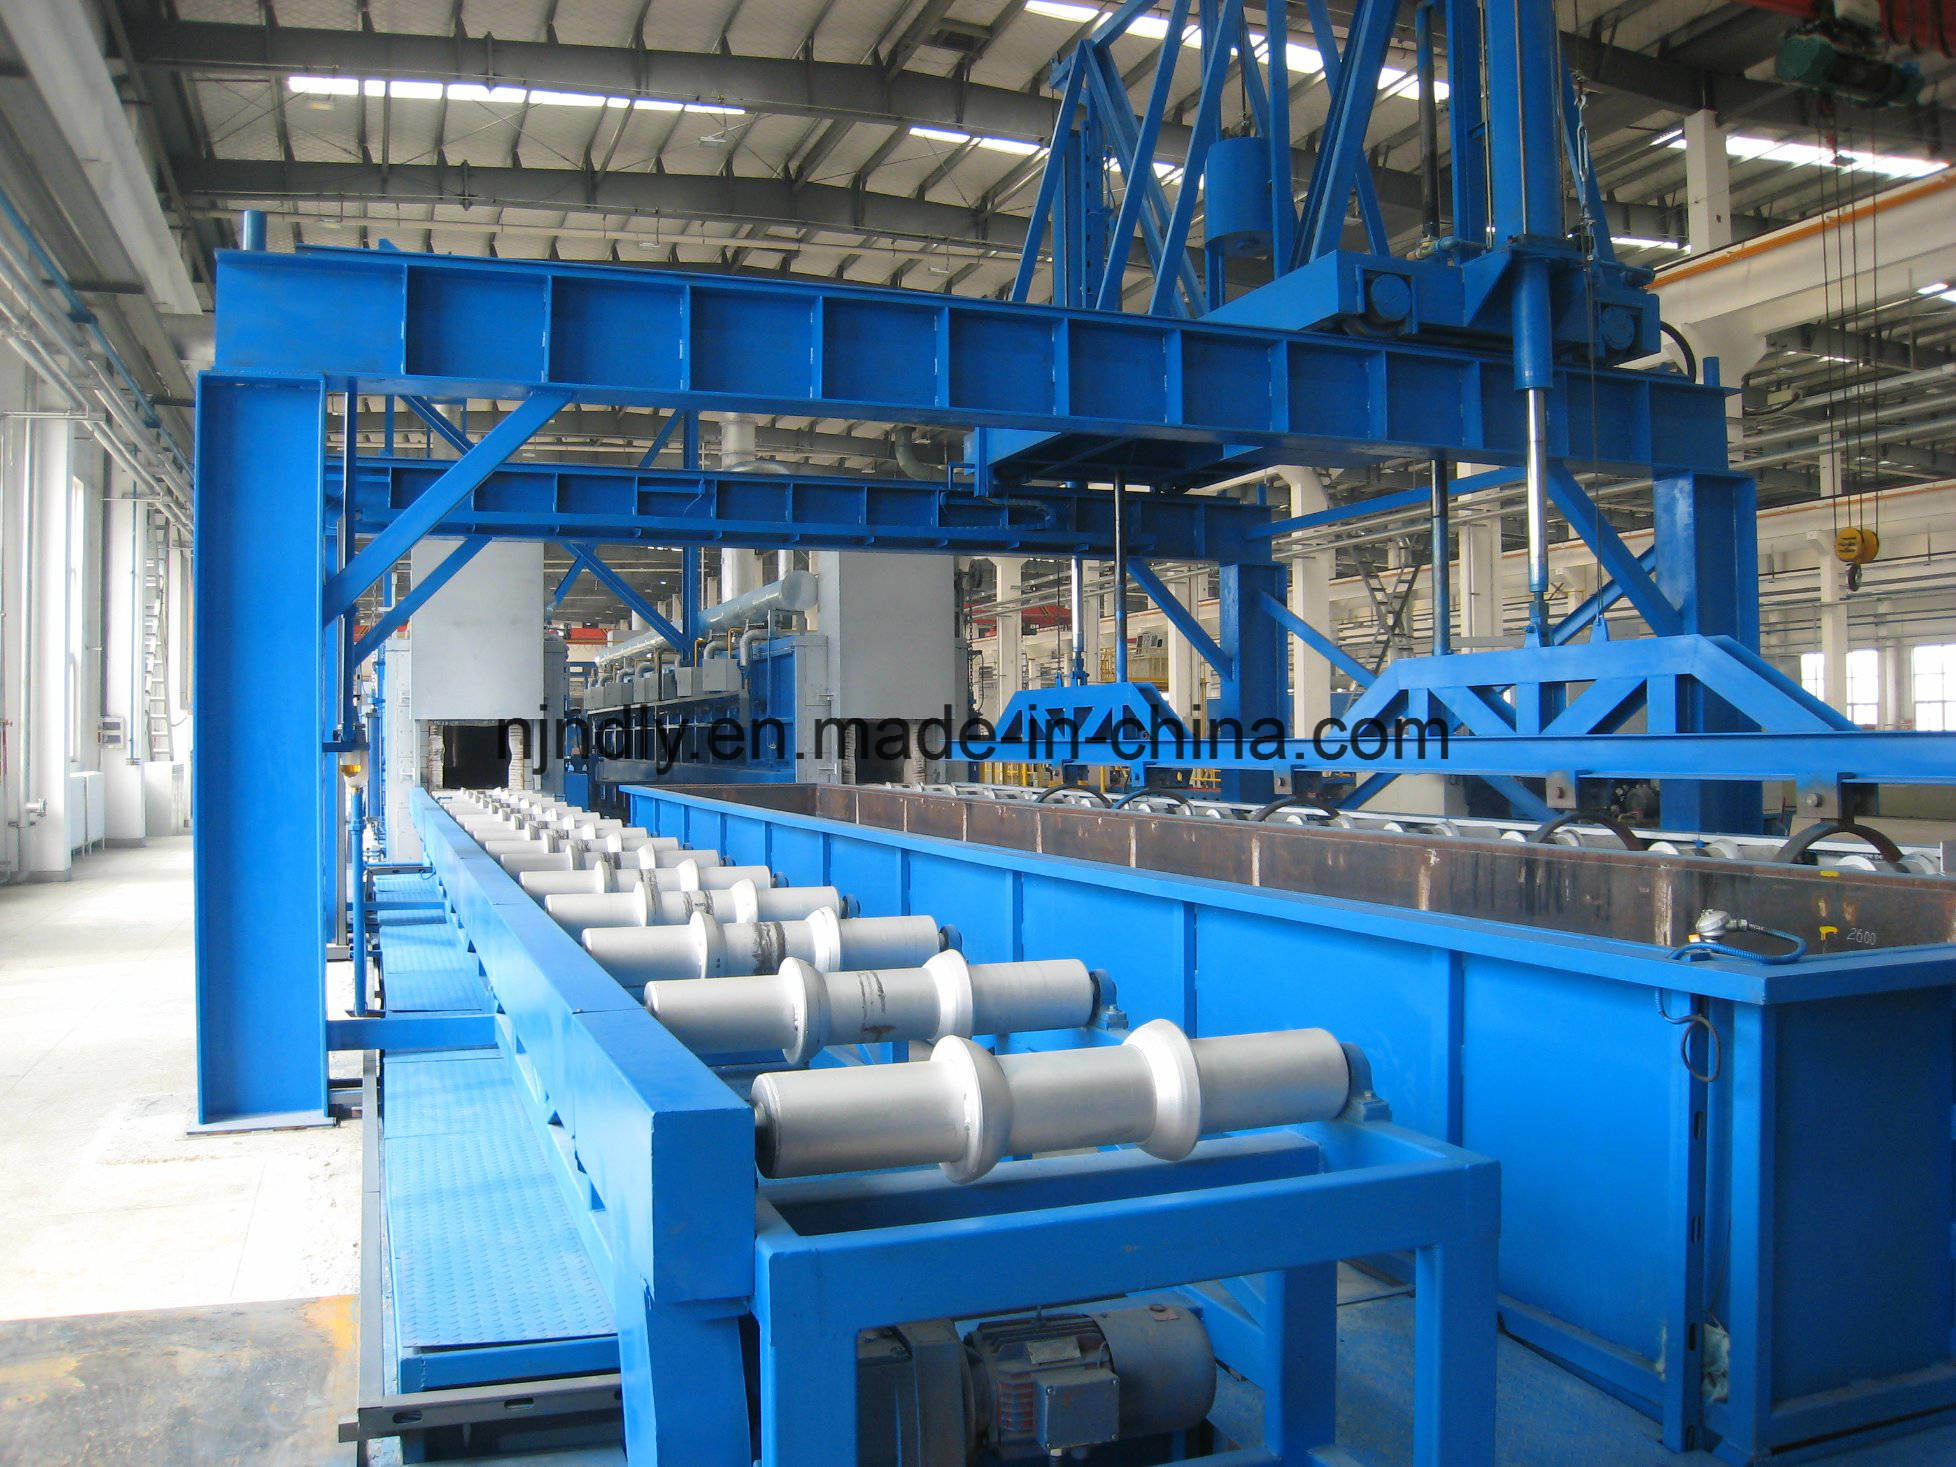 Drying Furnace for Stainless Steel Tube